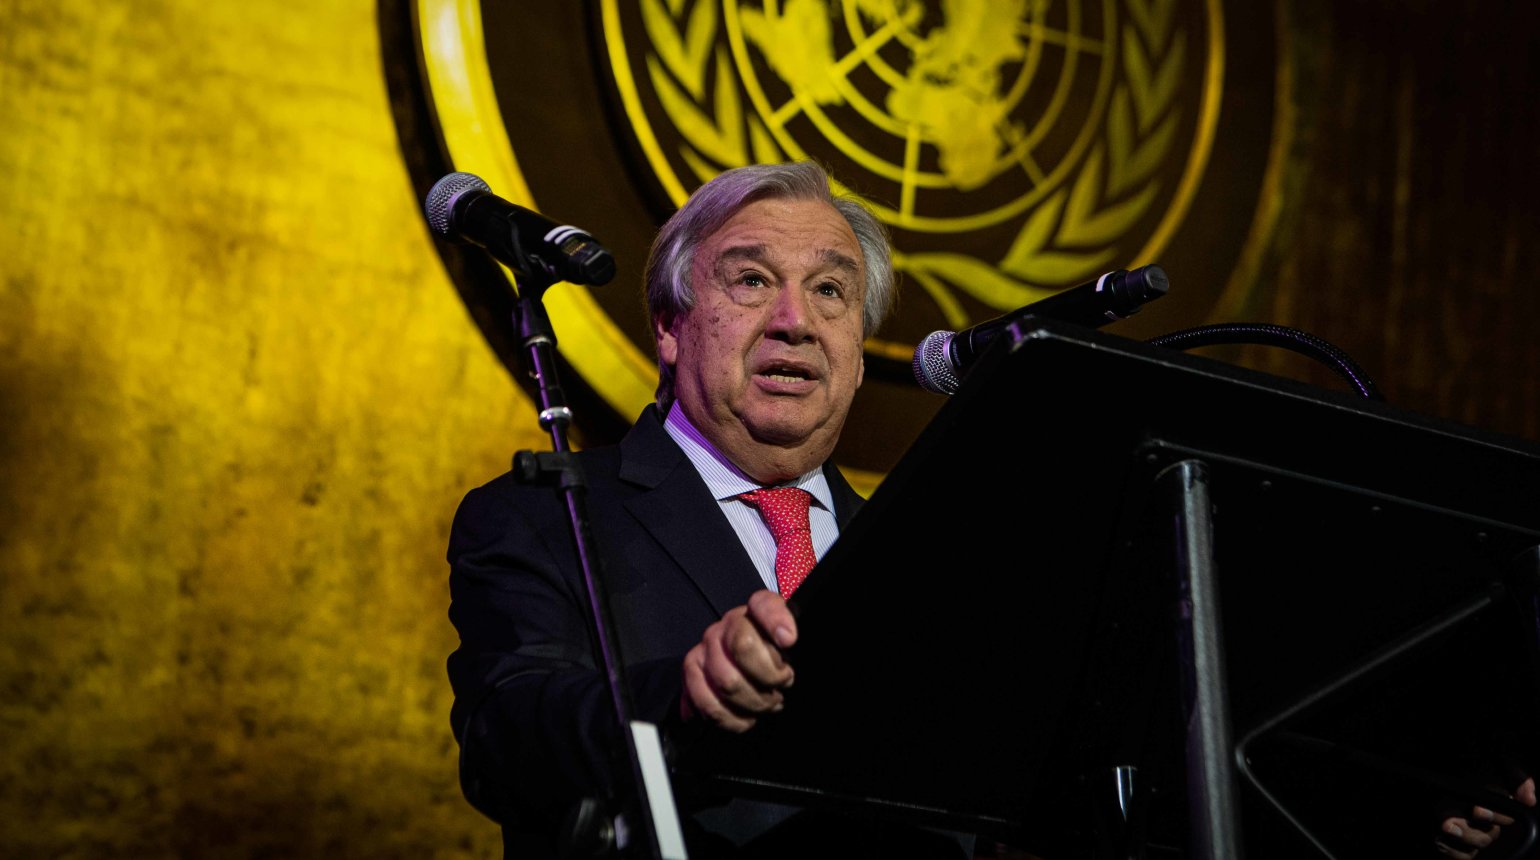 <p>His Excellency Mr. António Guterres, United Nations Secretary-General, spoke of the need to accelerate action toward achieving the UN Sustainable Development Goals. </p>